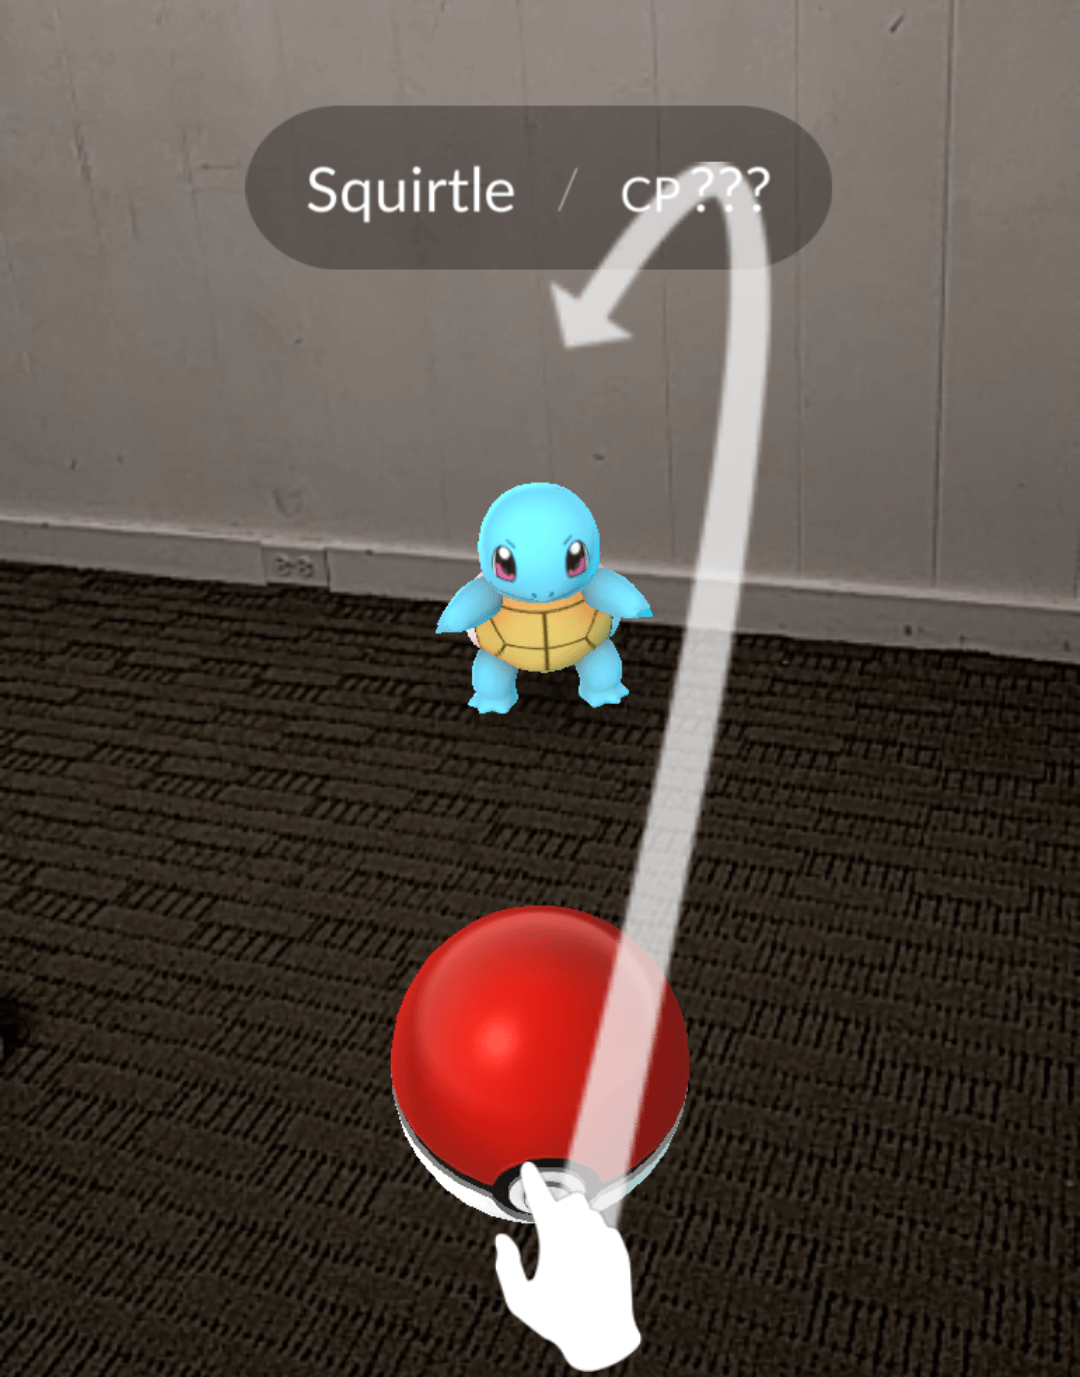 catchingSquirtle